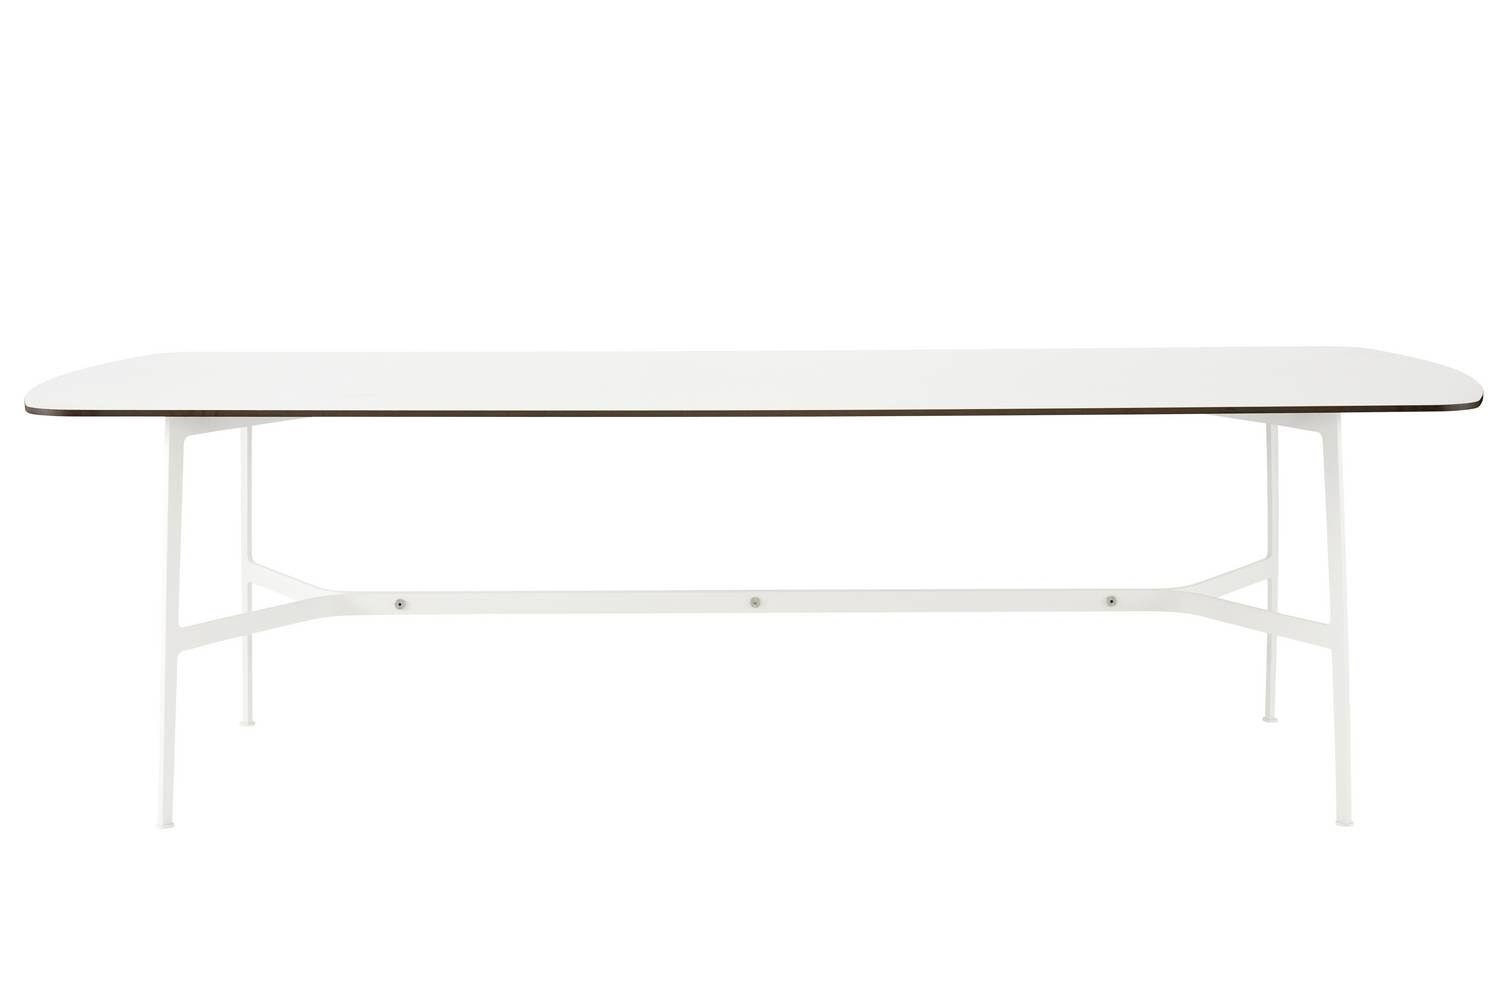 Eileen Table By Tom Fereday For SP01. Share